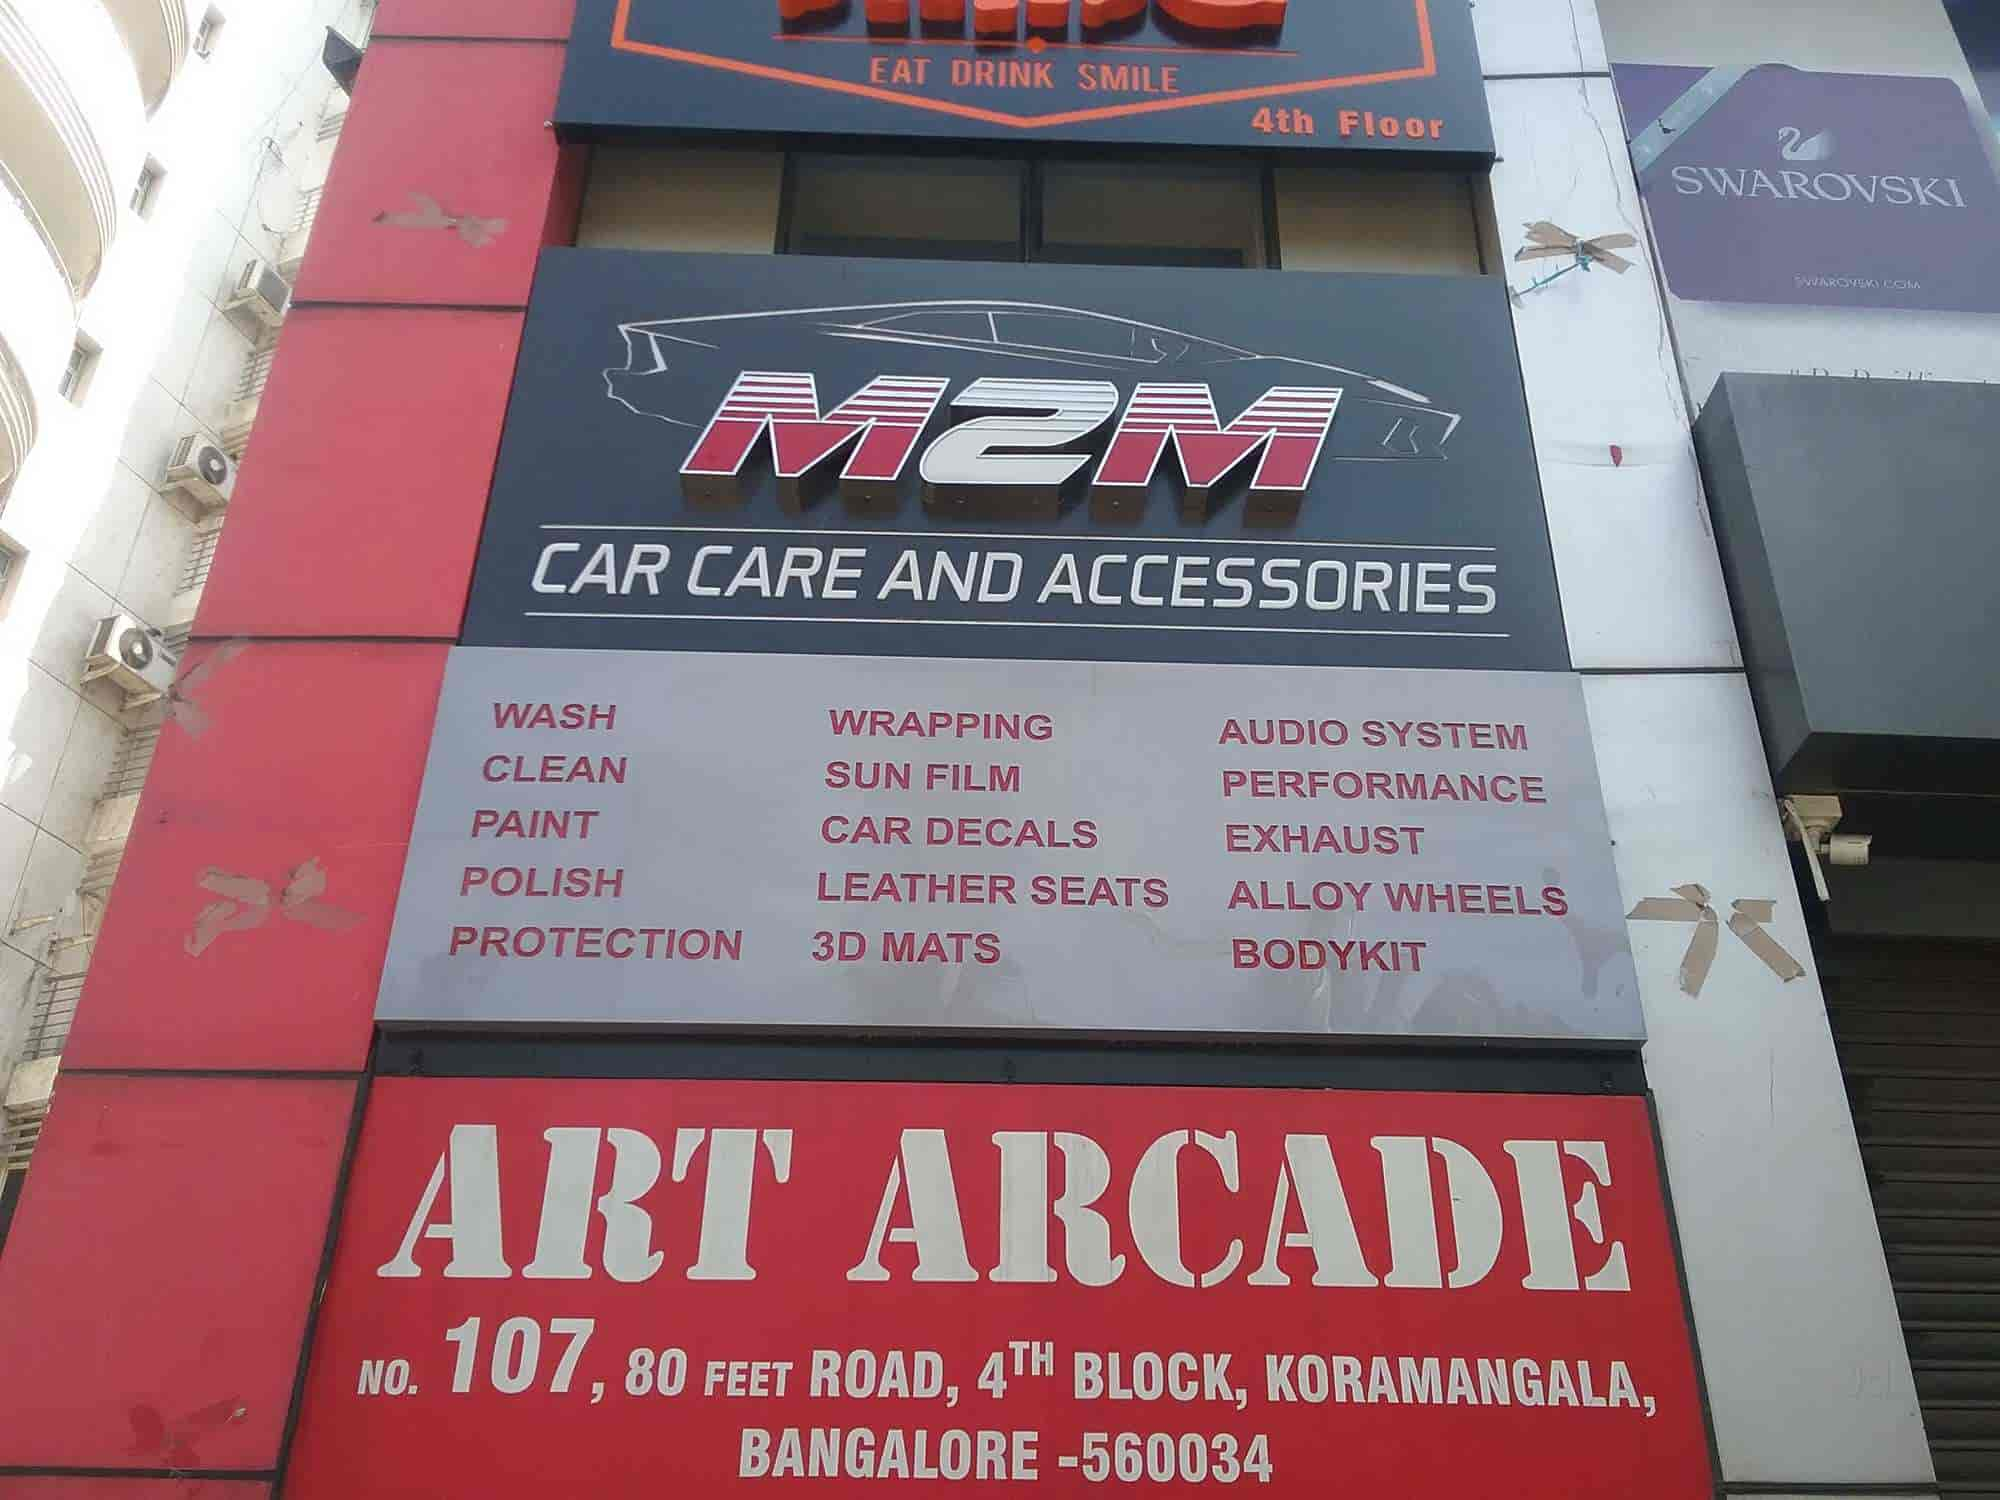 M2m Car Care And Accessories, Koramangala - Second Hand Car